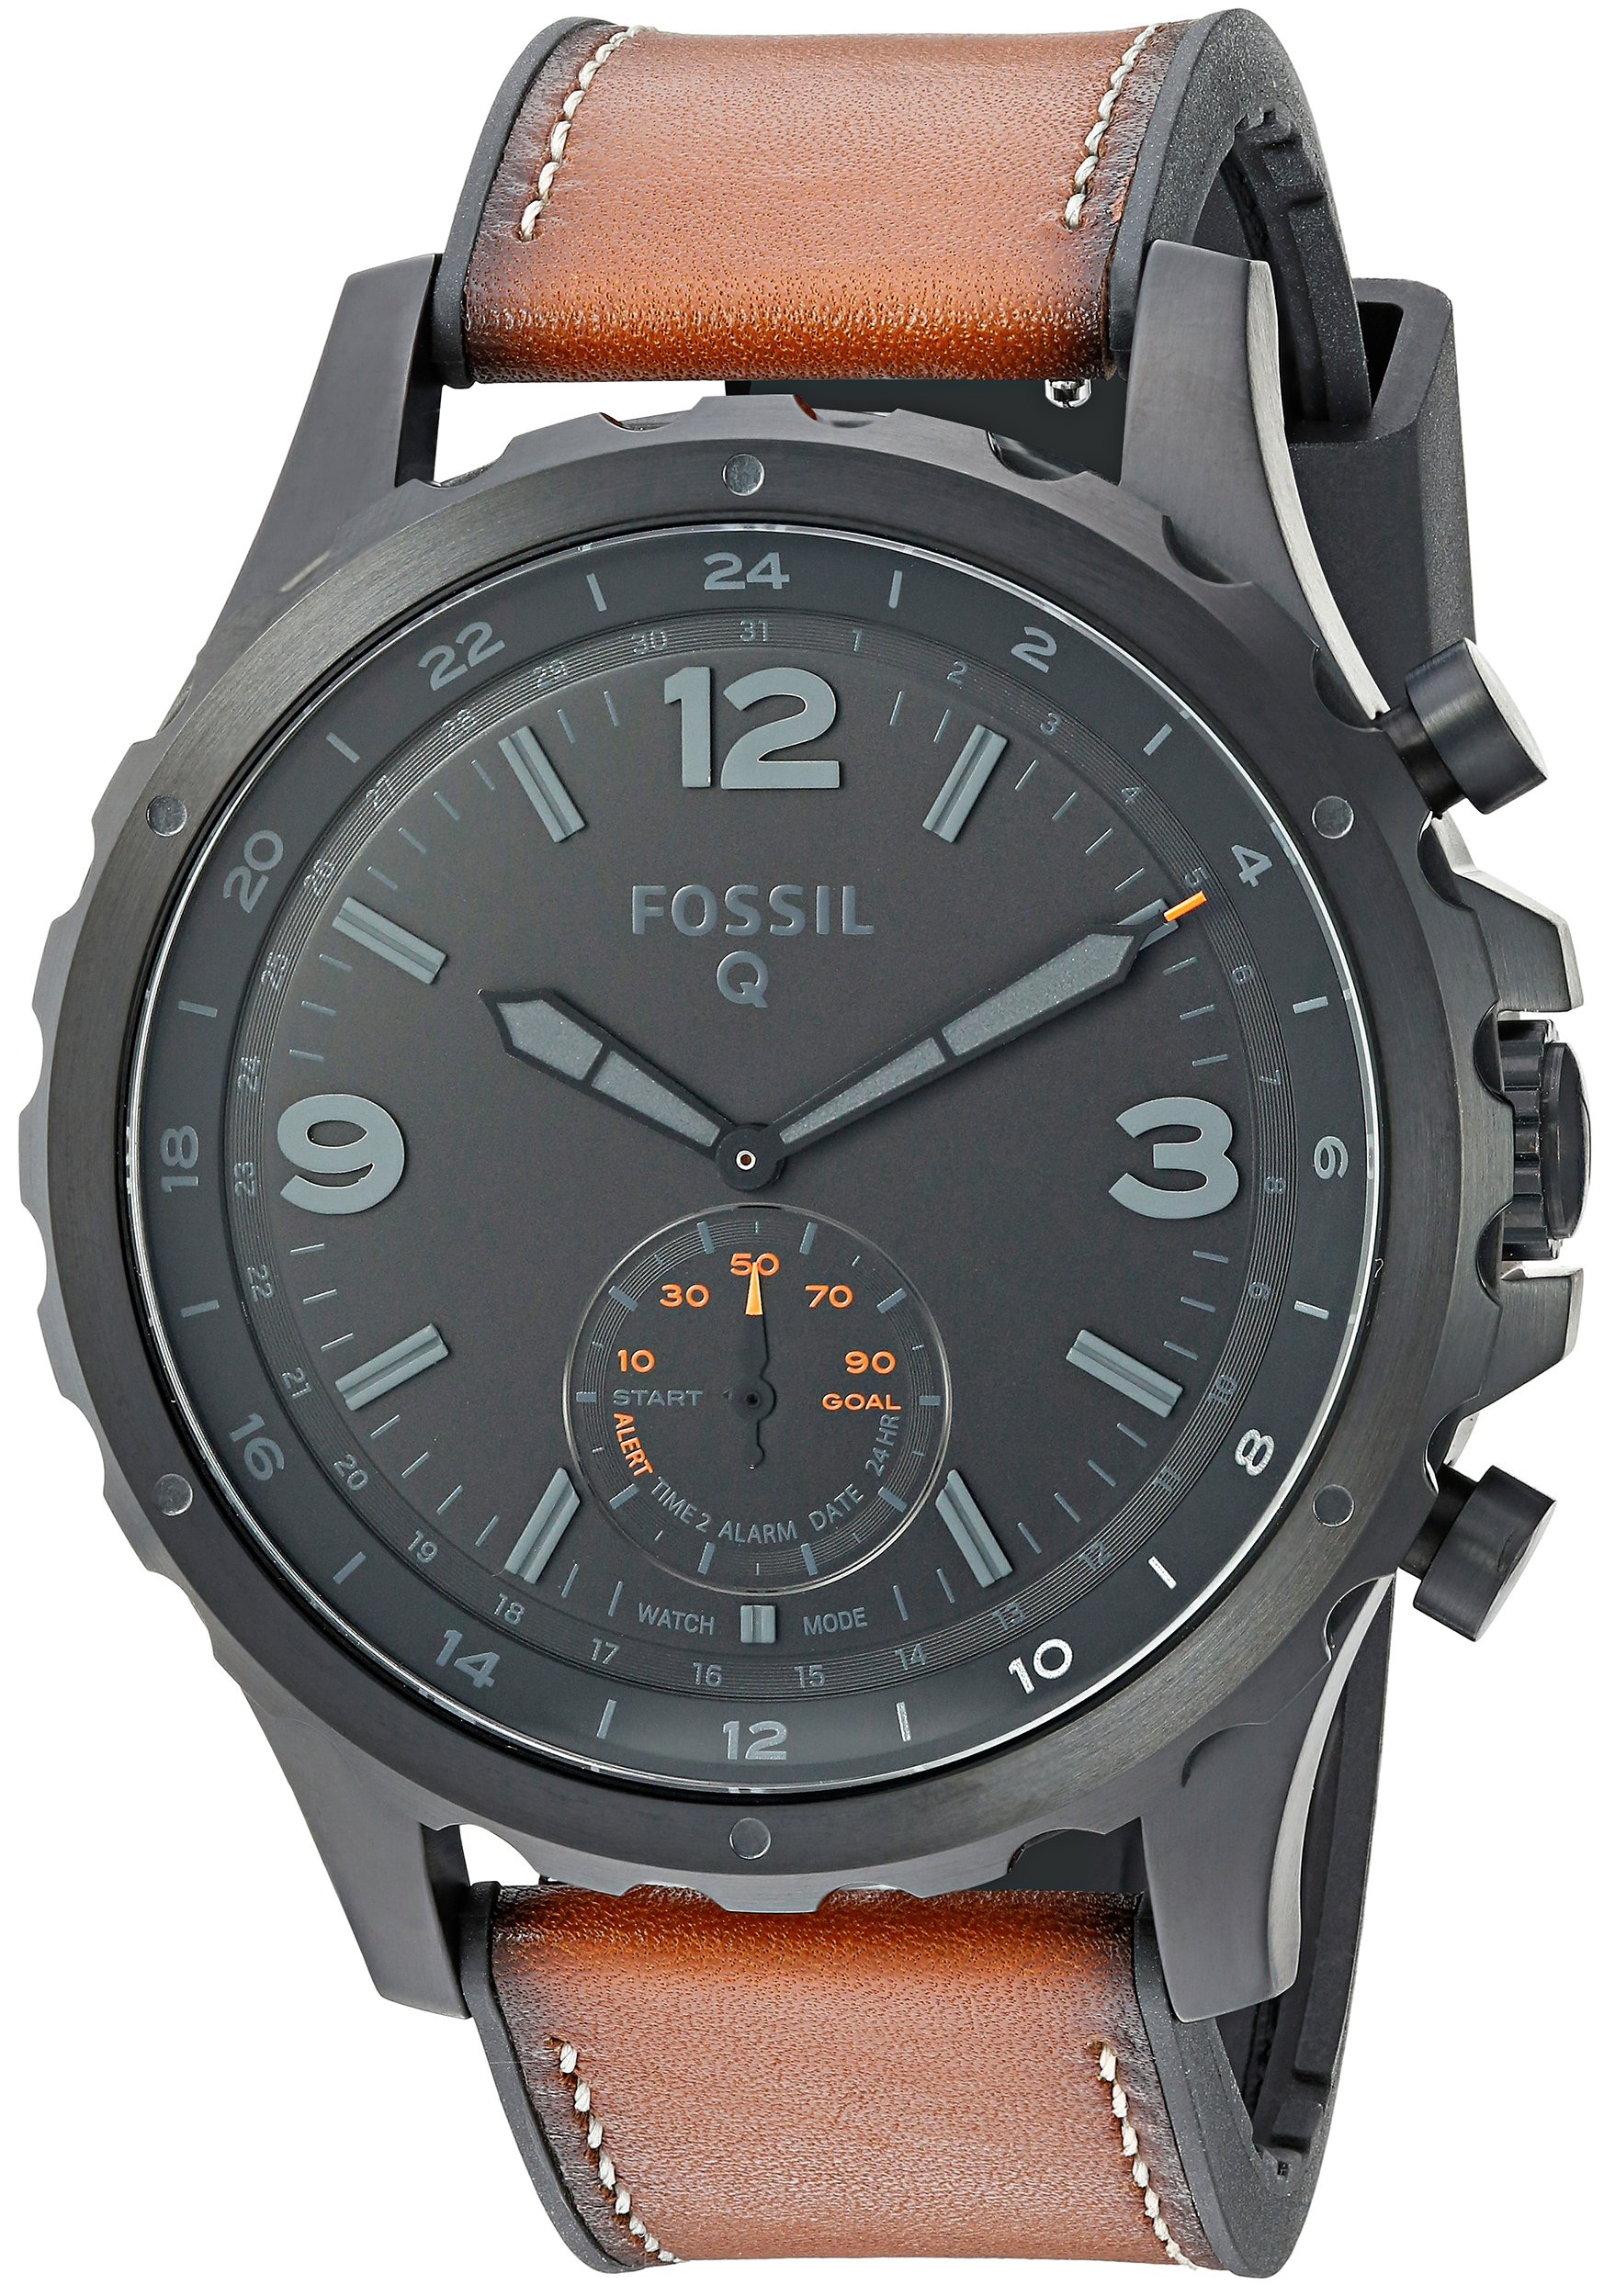 Fossil Q Men's Nate Stainless Steel and Leather Hybrid Smartwatch, Color: Black, Brown (Model: FTW1114) by Fossil